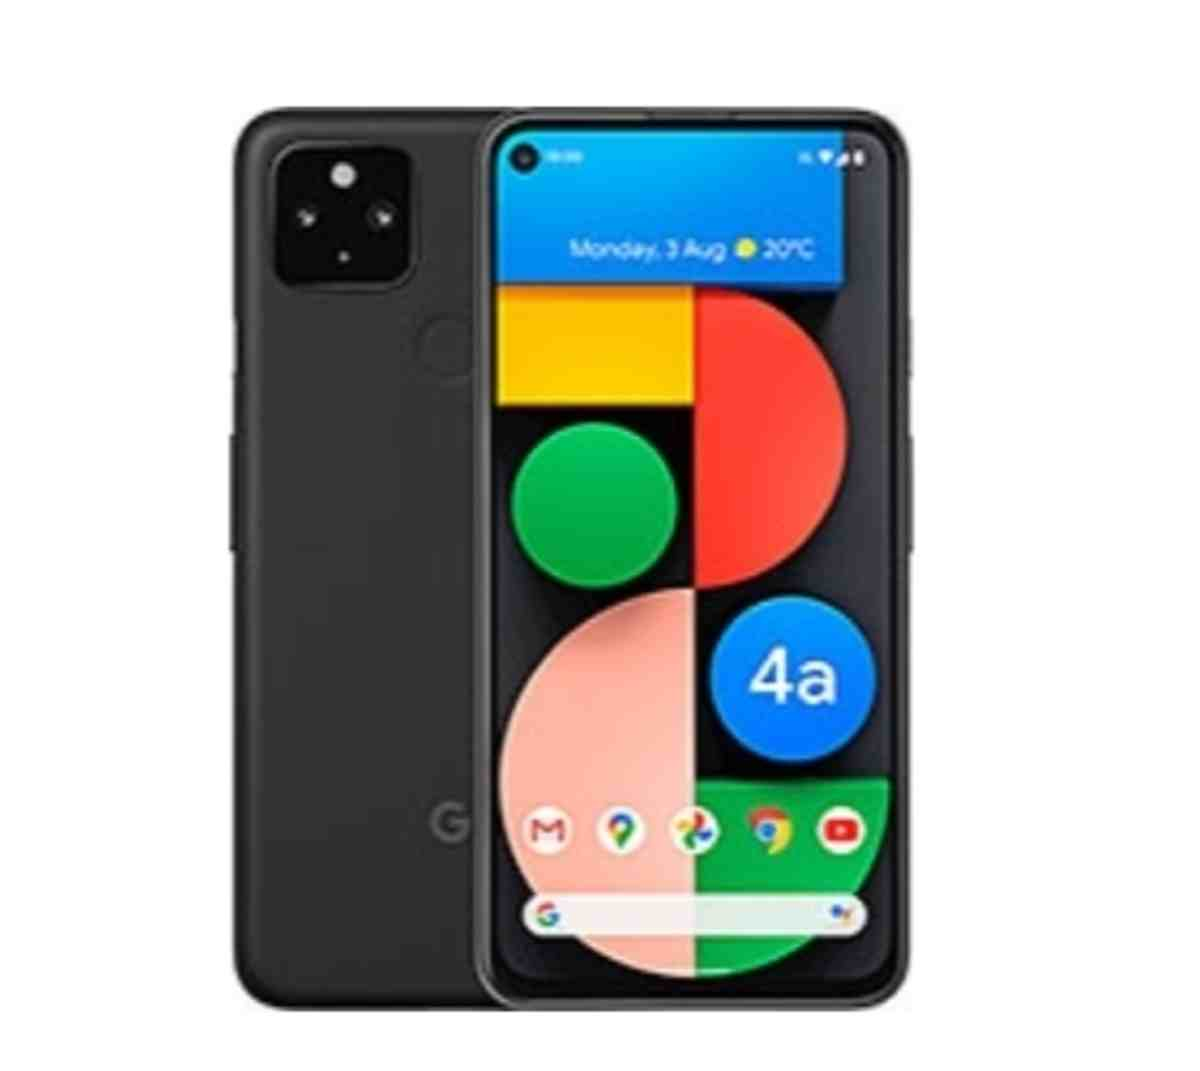 Google pixel 4a 5g price in Nigeria, price of google pixel 4a 5g in Nigeria, google pixel 4a 5g full specification, how much is google pixel 4a 5g, google pixel 4a 5g specs and price in Nigeria, google pixel 4a 5g specs, google pixel 4a 5g price